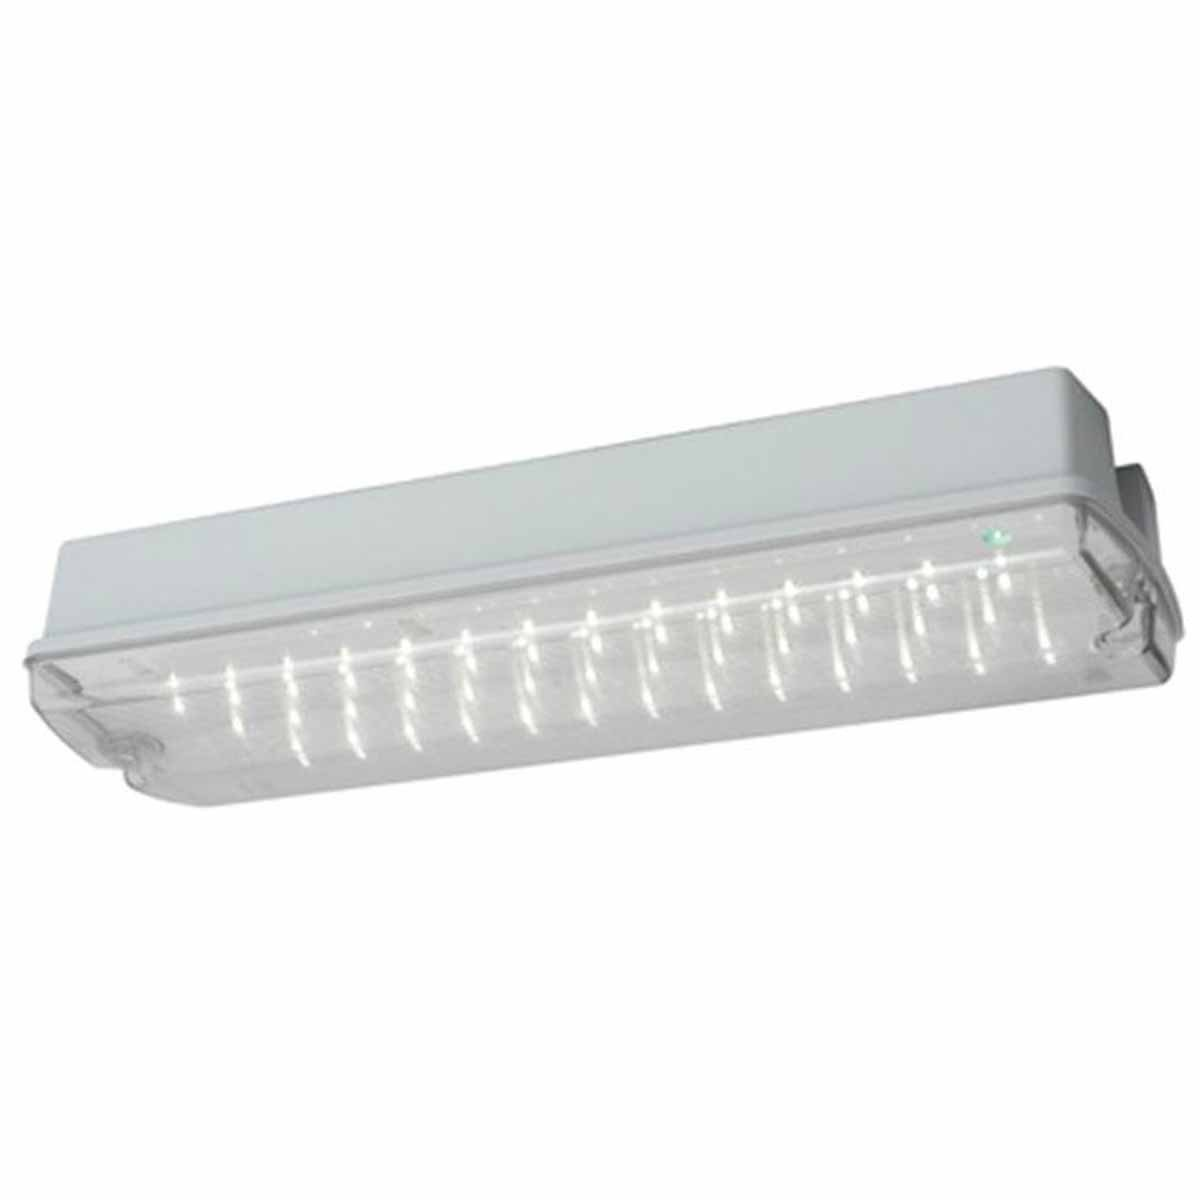 Ansell CENTURION LED BULKHEAD MAINTAINED / NON-MAINTAINED 7W WHITE